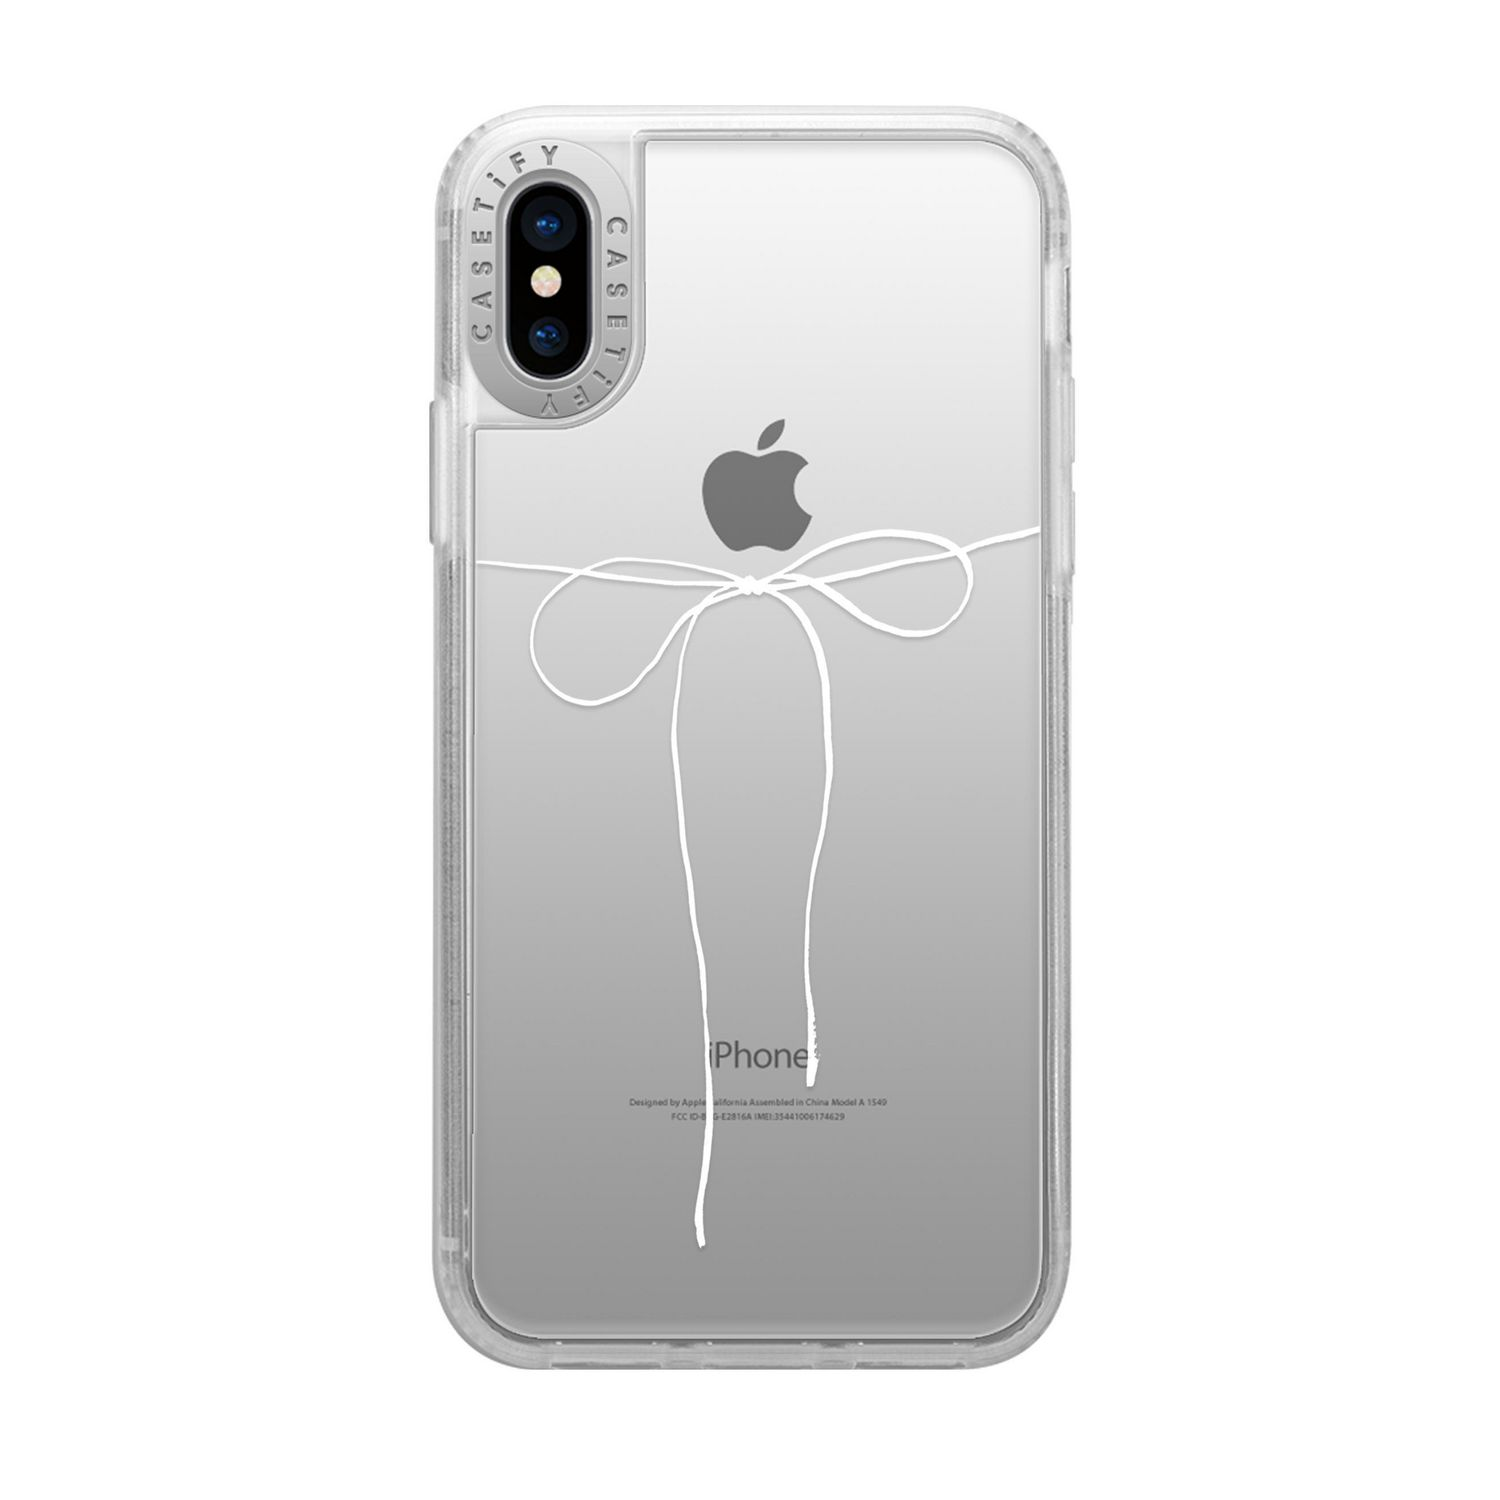 on sale 22d28 0988c Casetify Grip Cases Case for iPhone XS/X